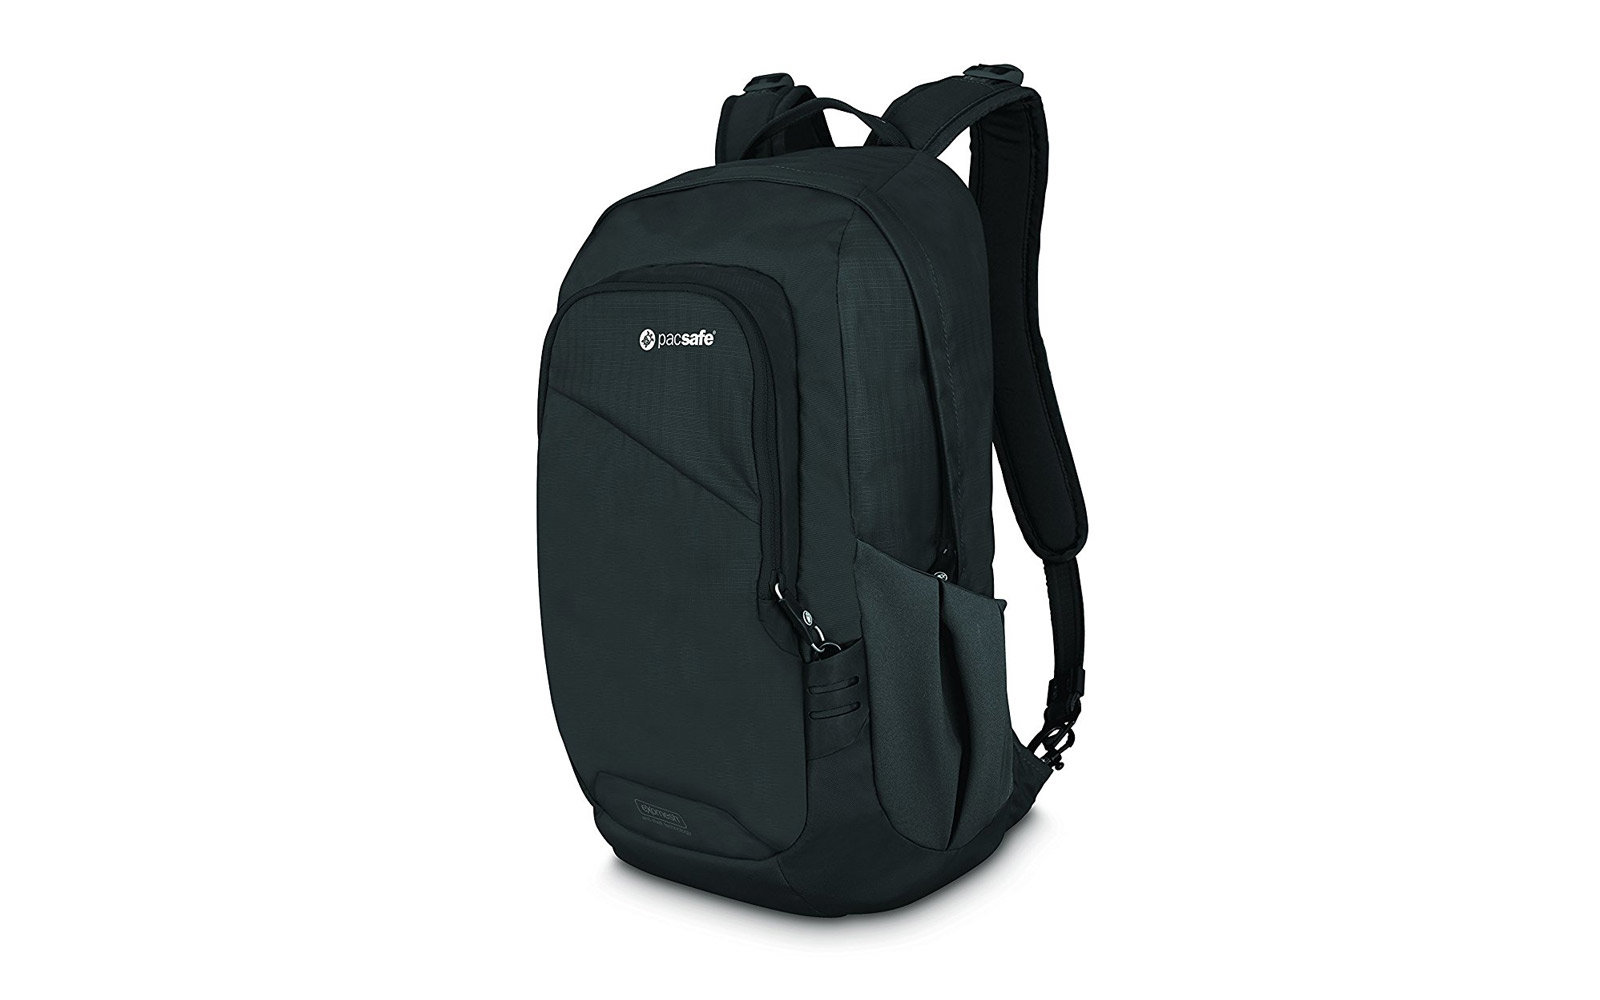 The Best Laptop Backpacks for Travel a80610c01390e